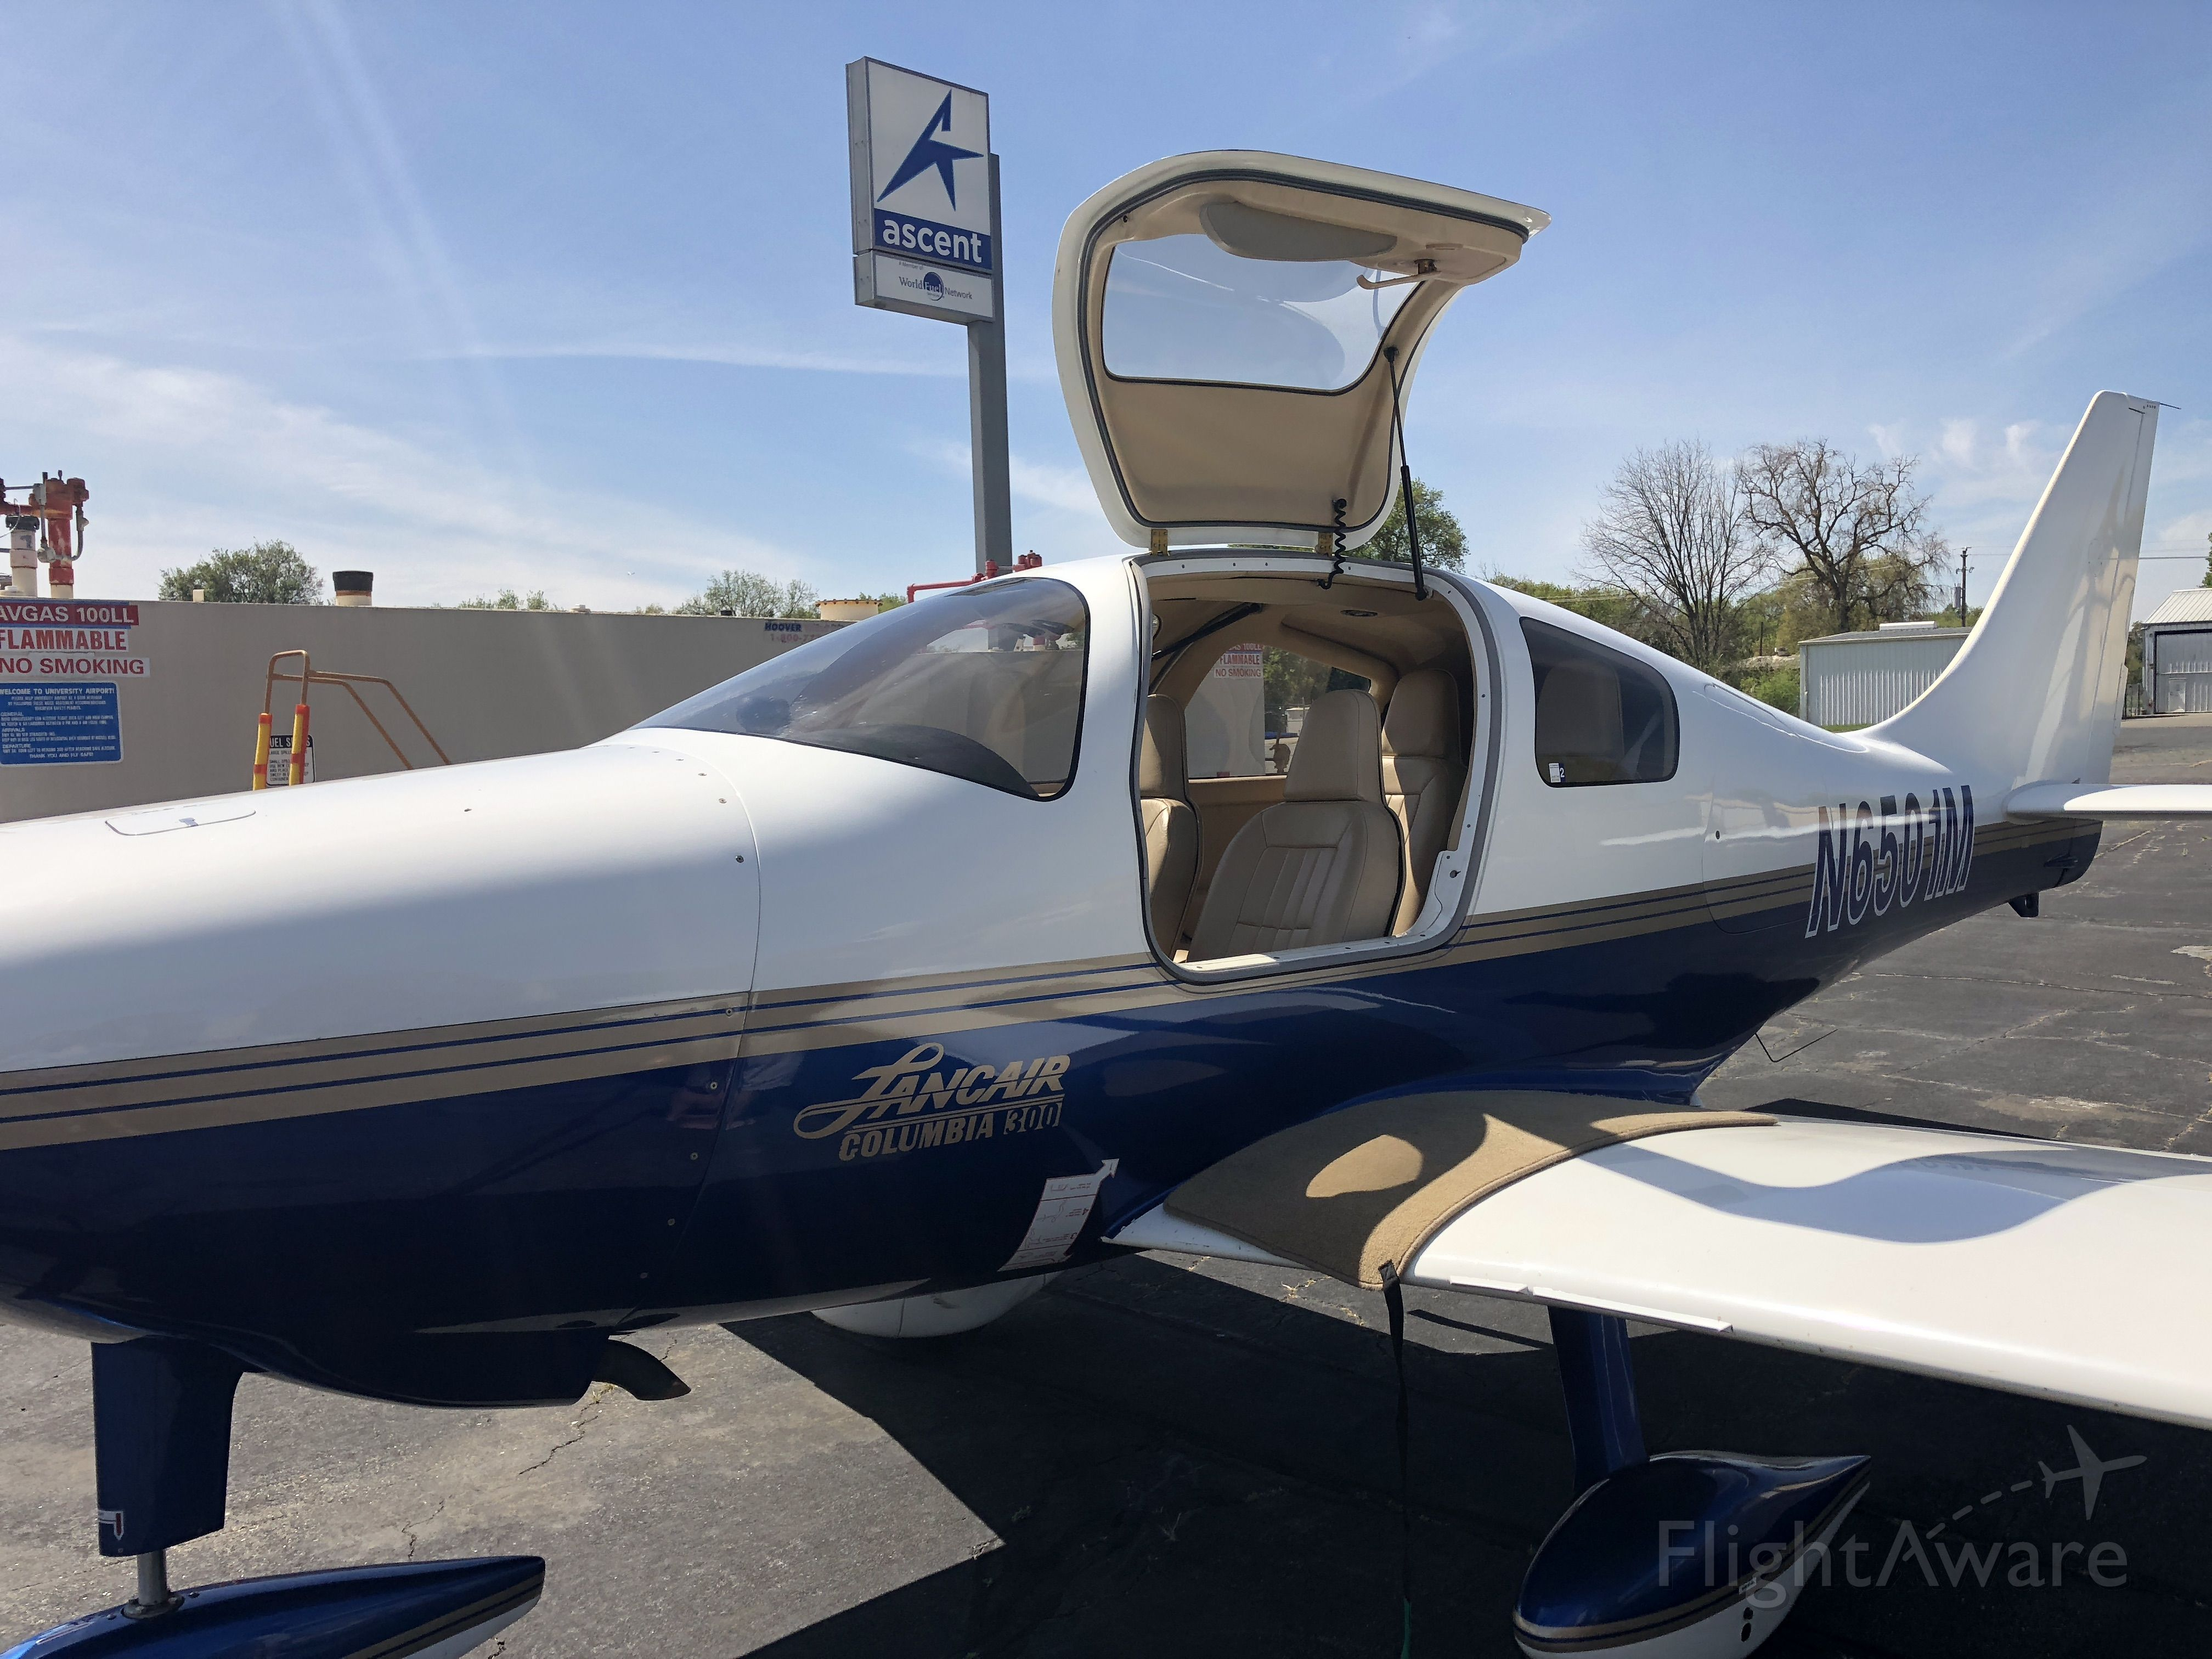 Cessna 350 (N6501M) - Talked with the owner. One of the first Lancair Columbia 300s off the line.